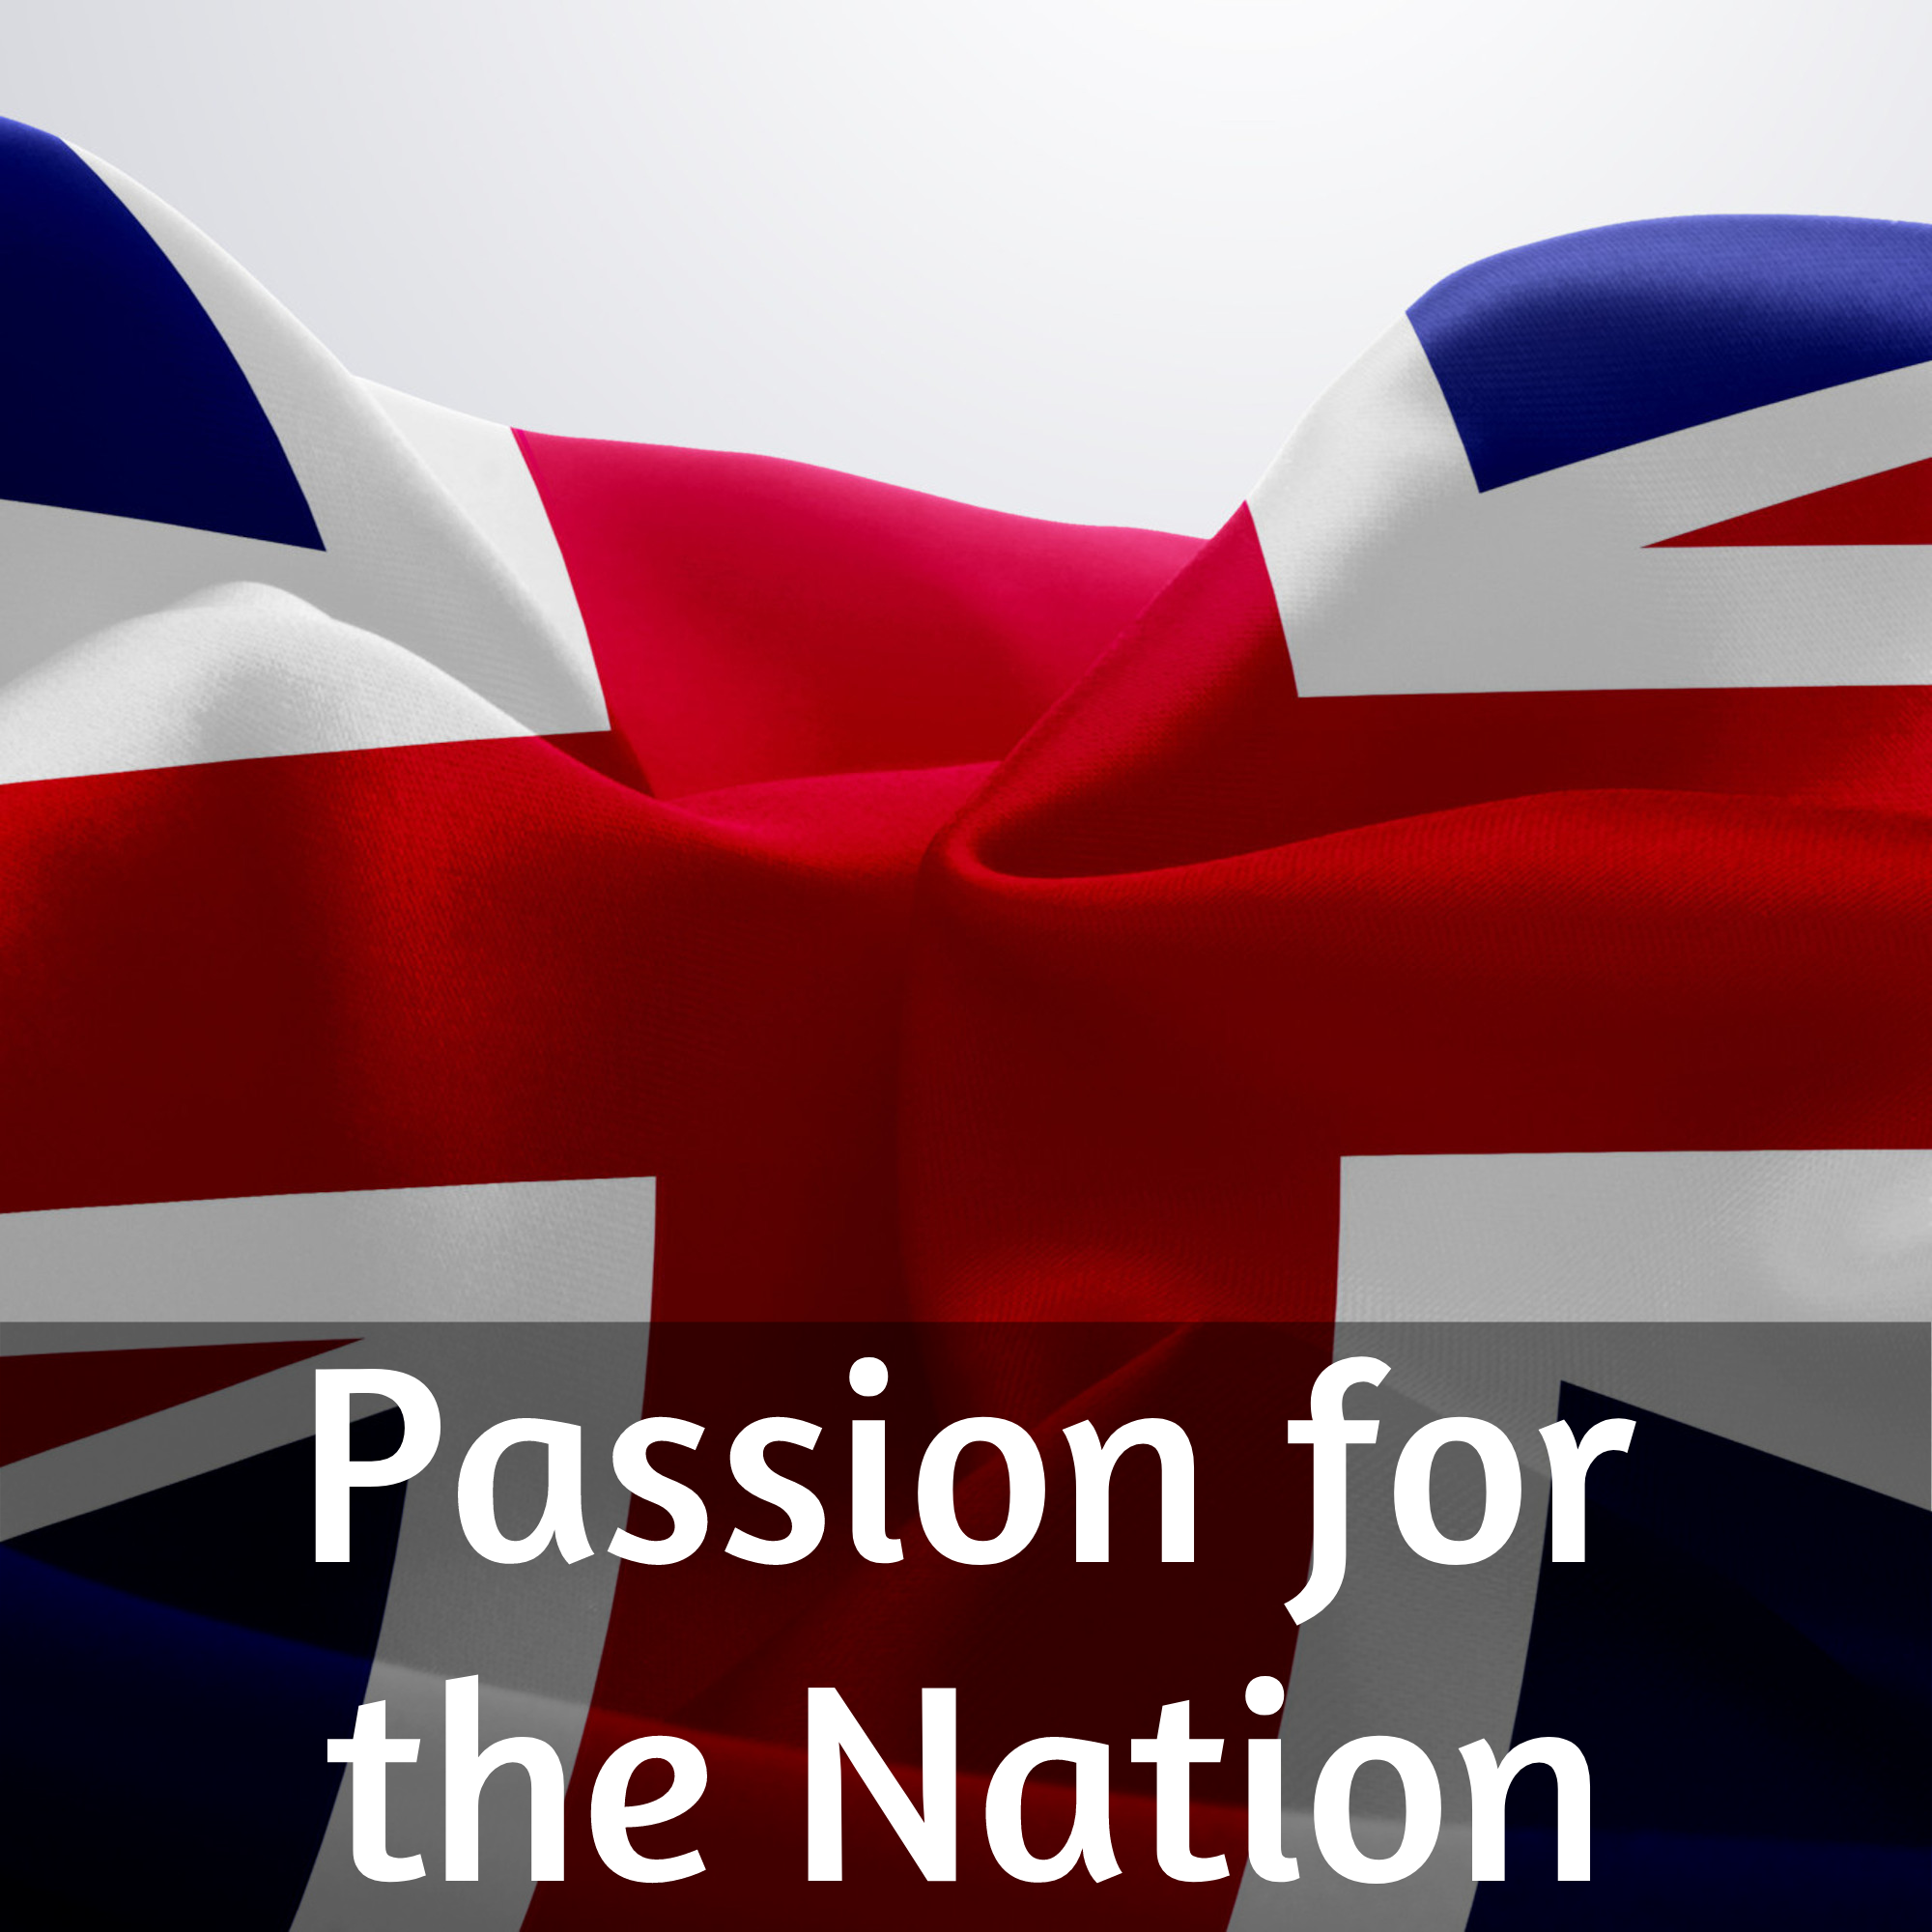 Passion for the Nation